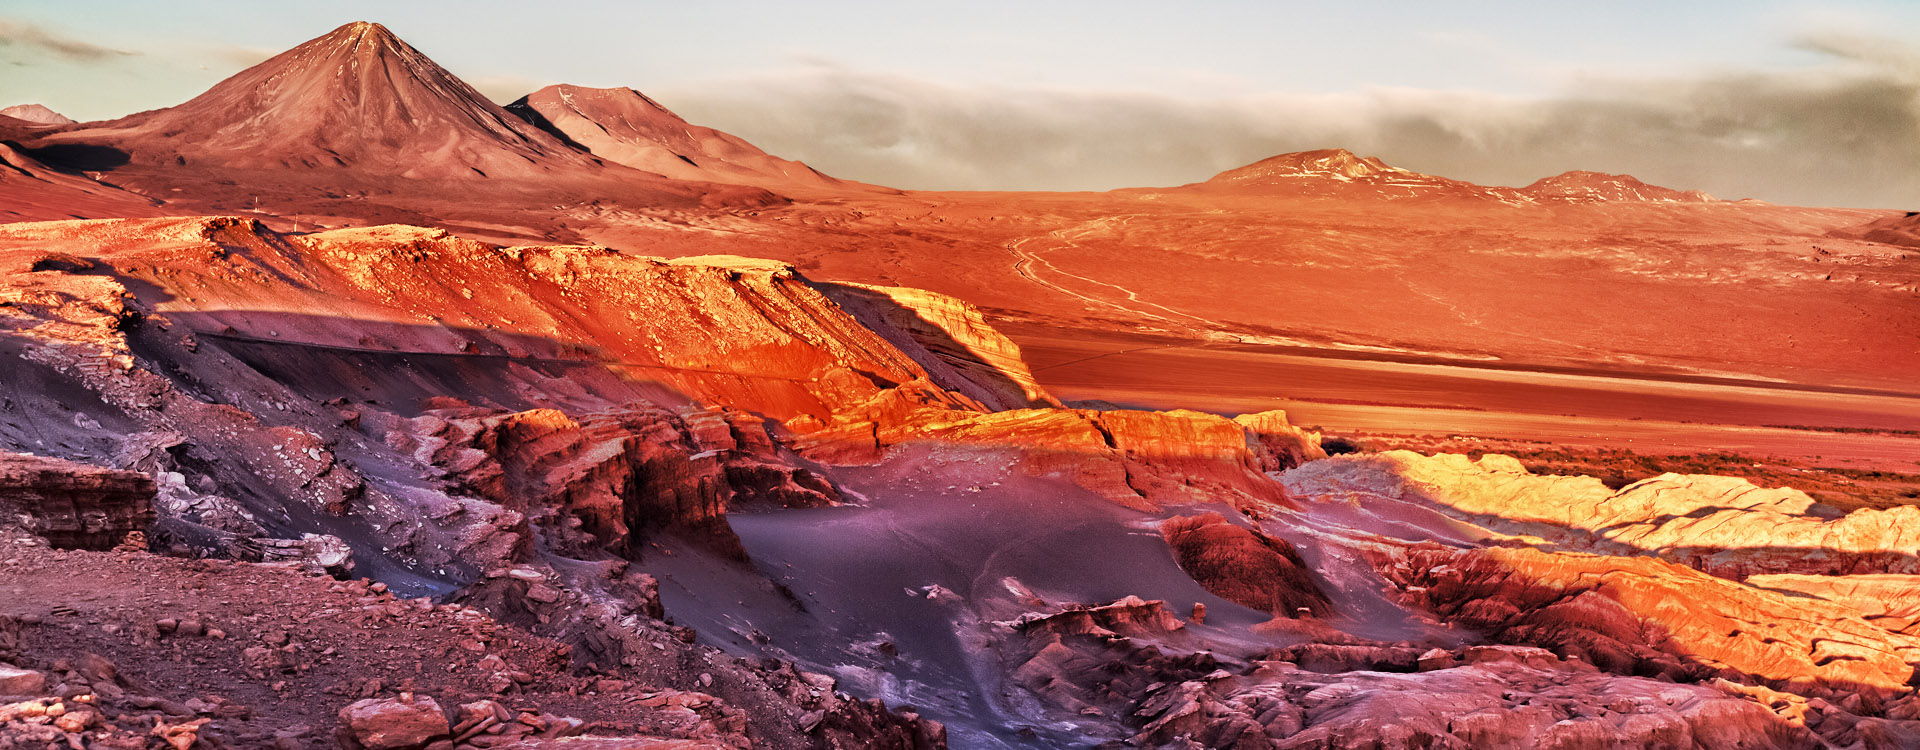 Sunset in front of the volcano and the salt desert